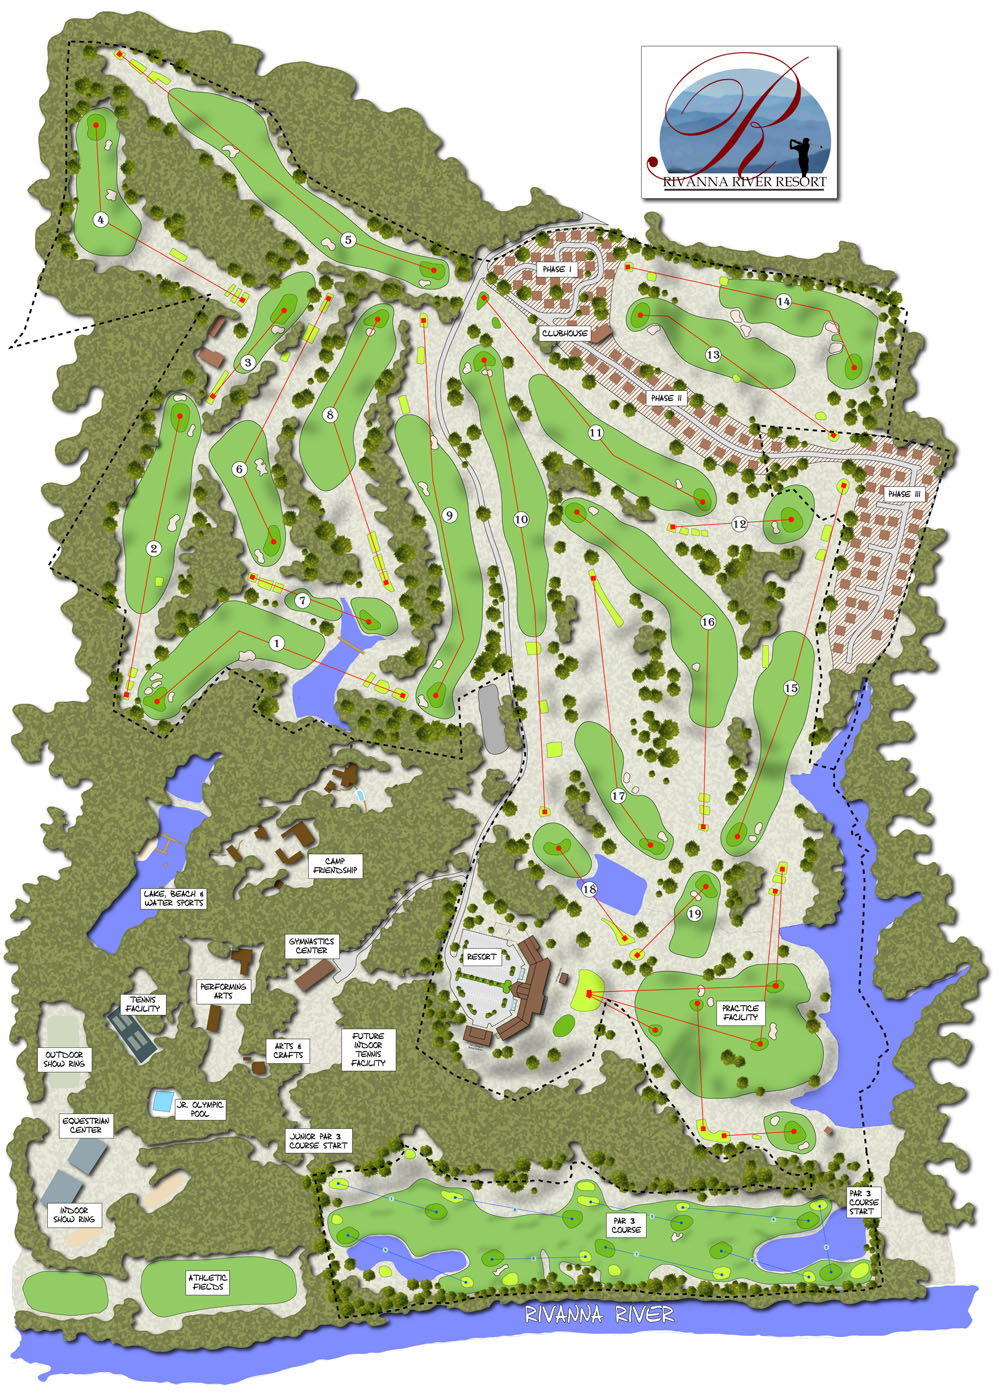 Internal_Rendering Golf Course Club House Floor Plans on golf course clubhouse design, golf course design plans, golf course floor plans, golf course home exteriors tuscan style,